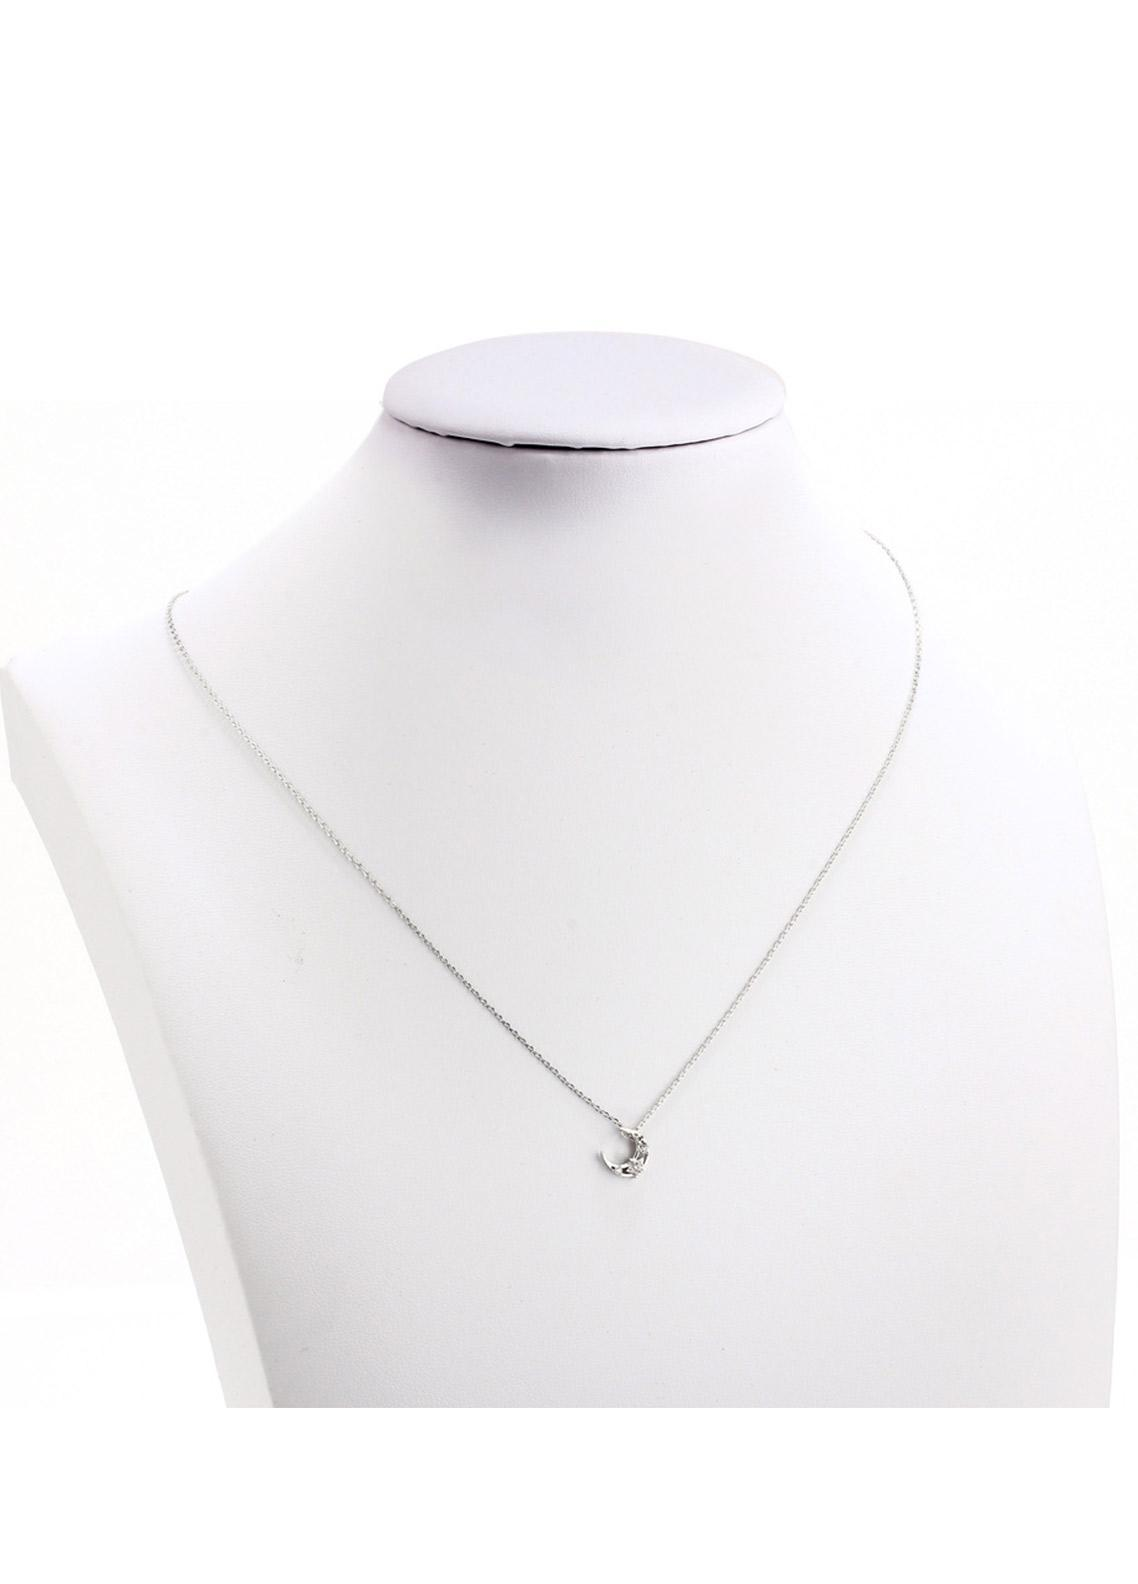 Anna Grace London by Silk Avenue Silver Plated Crystal Moon Necklace AGN0050 - Ladies Jewellery